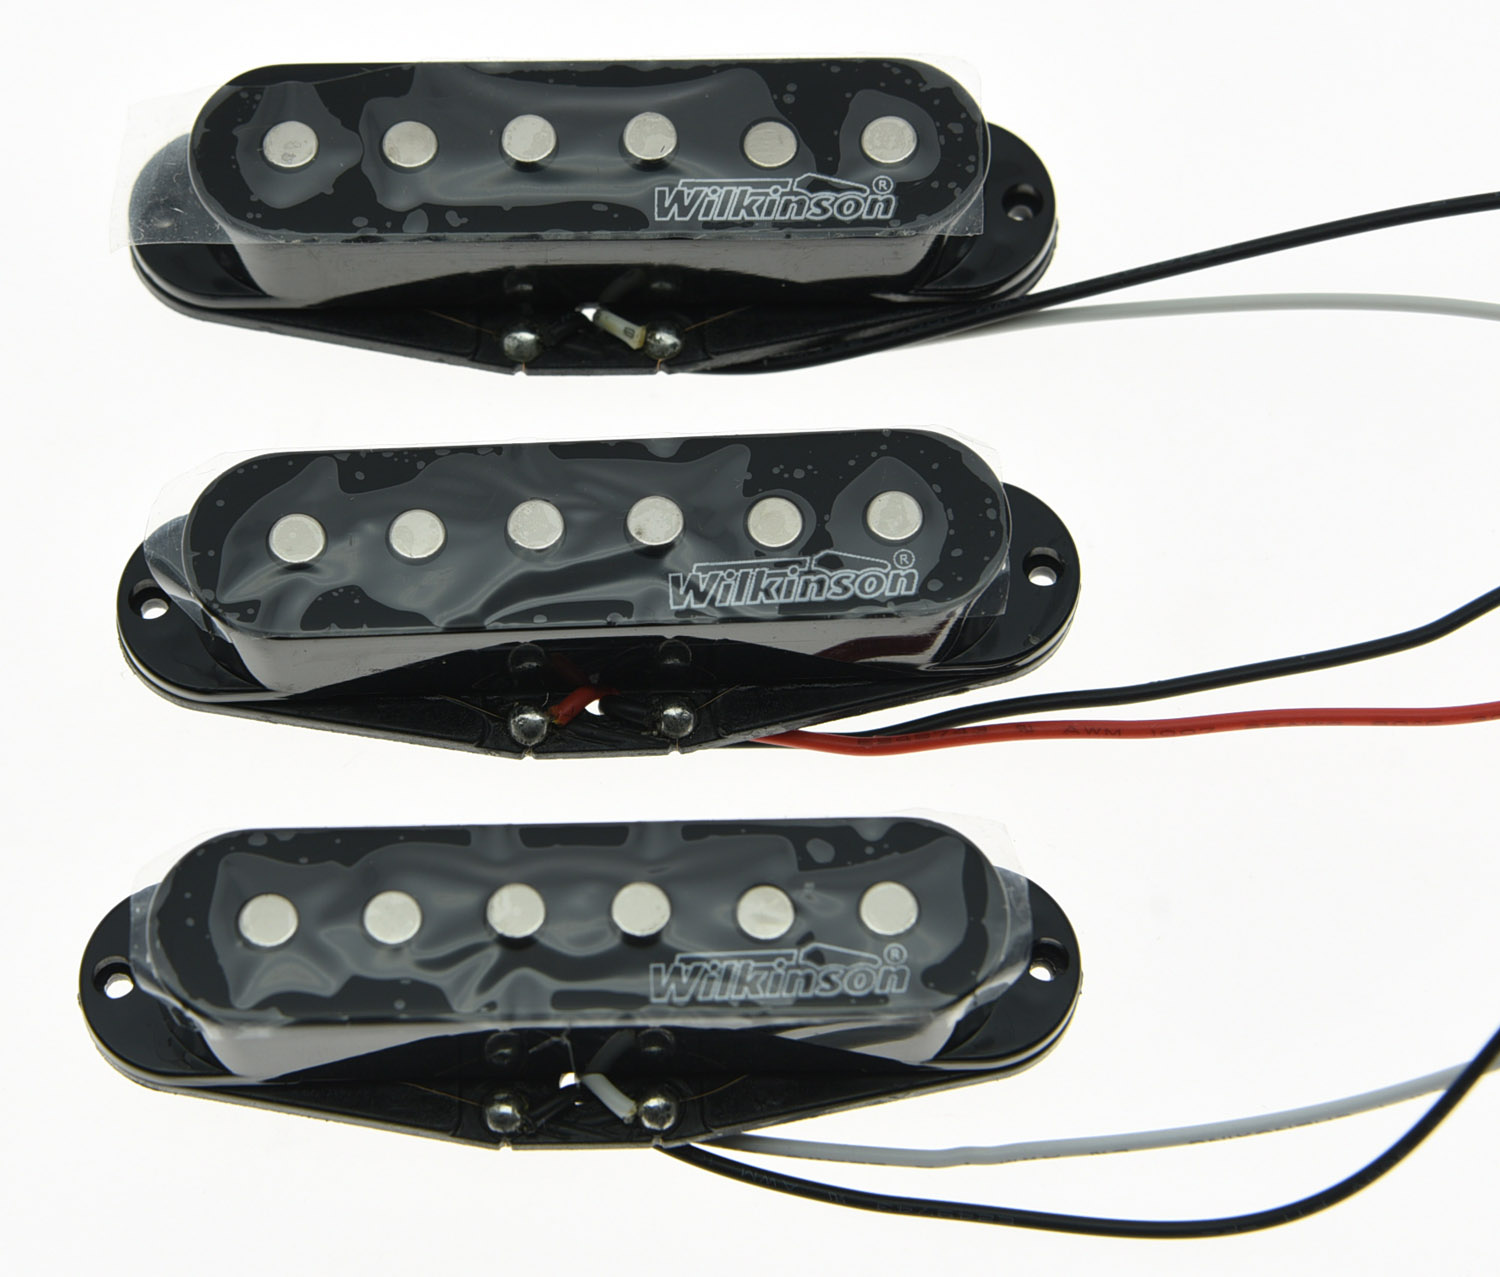 Quality Wilkinson Lic Vintage Voice Single Coil Pickups for ST Black vintage voice single coil pickups fits for stratocaster ceramic bobbin alnico single coil guitar pickup staggered pole top